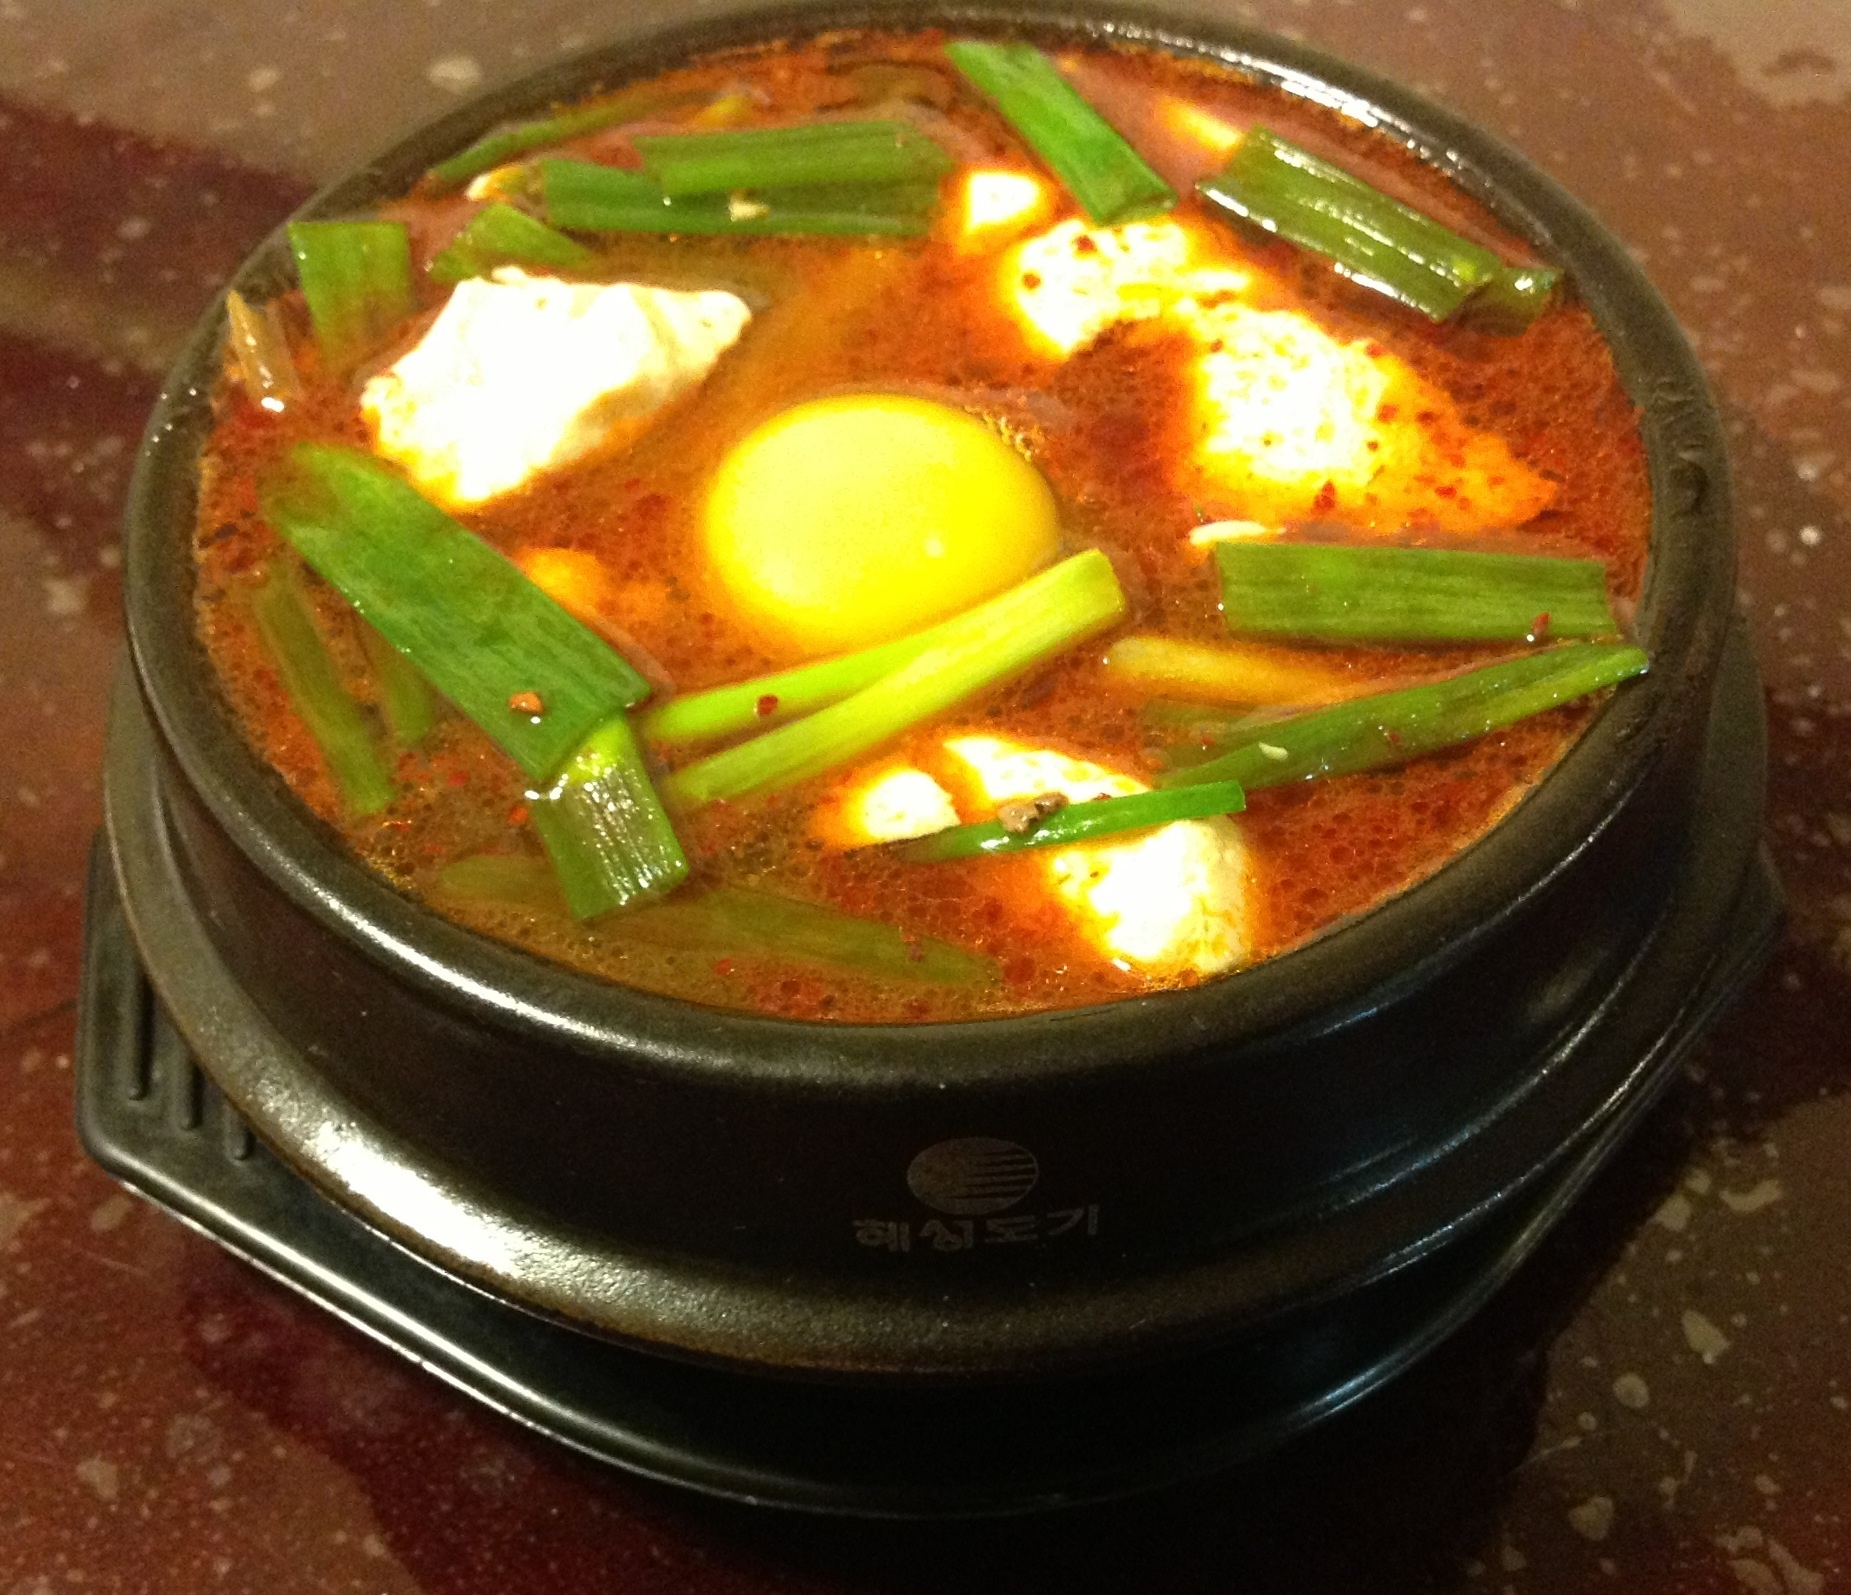 Korean food photo: 순두부 찌개 / Soondubu Jjigae (Spicy soft tofu ...